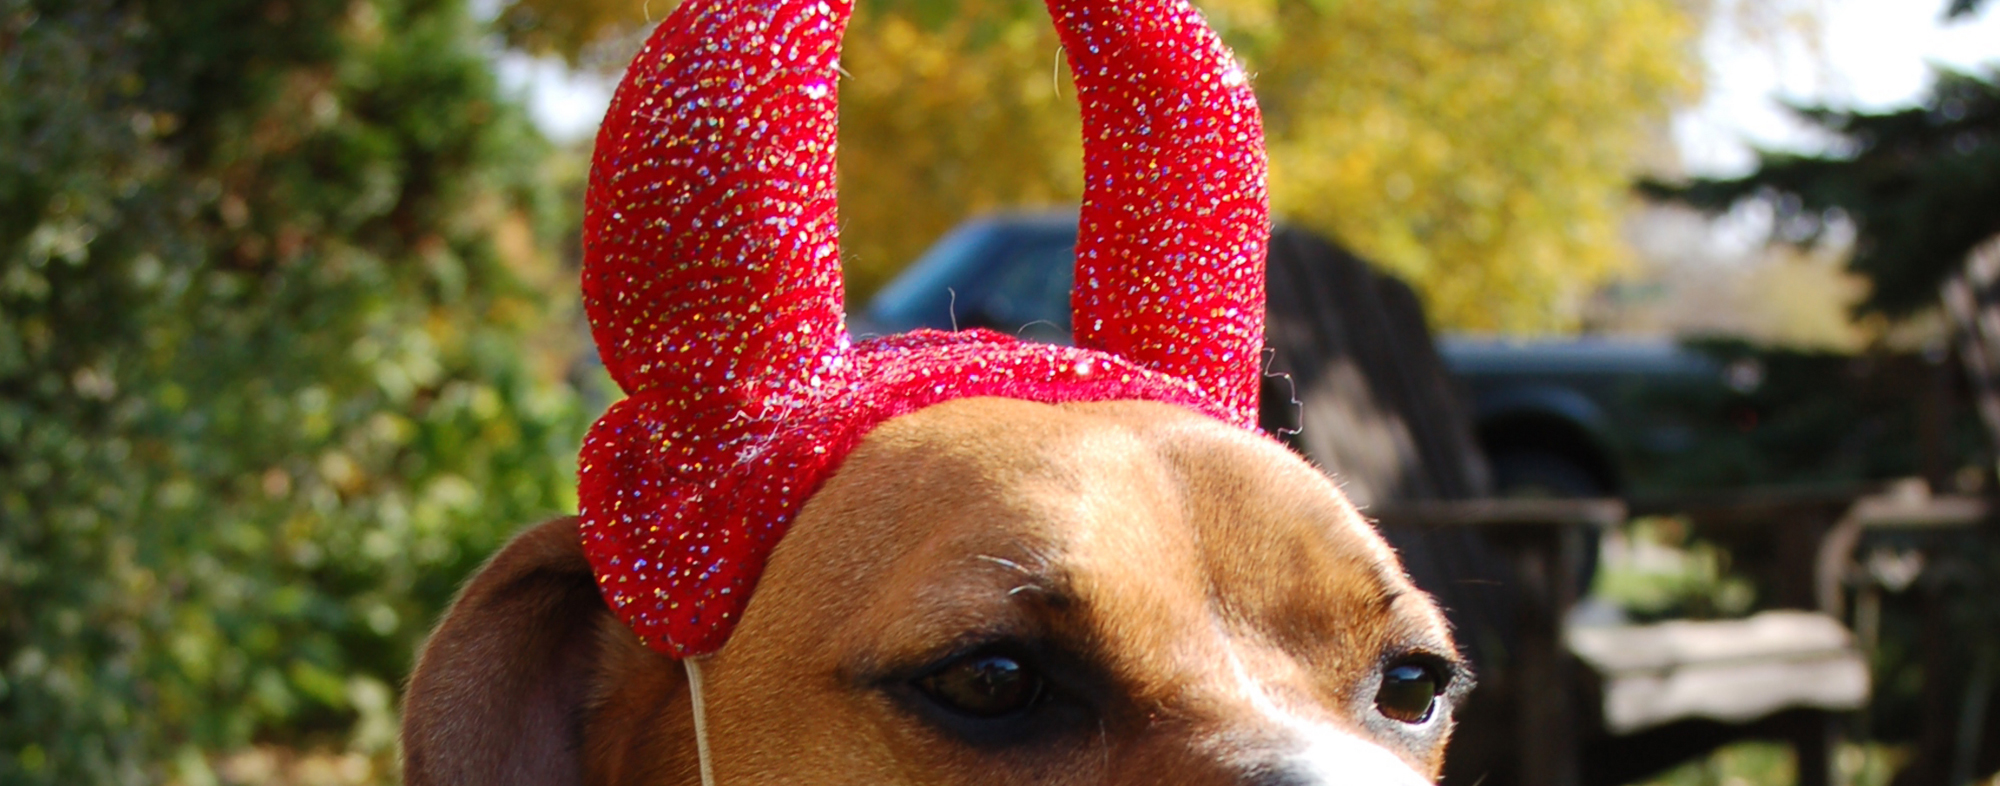 Horns of consecration upon a dog's head, for a halloween costume